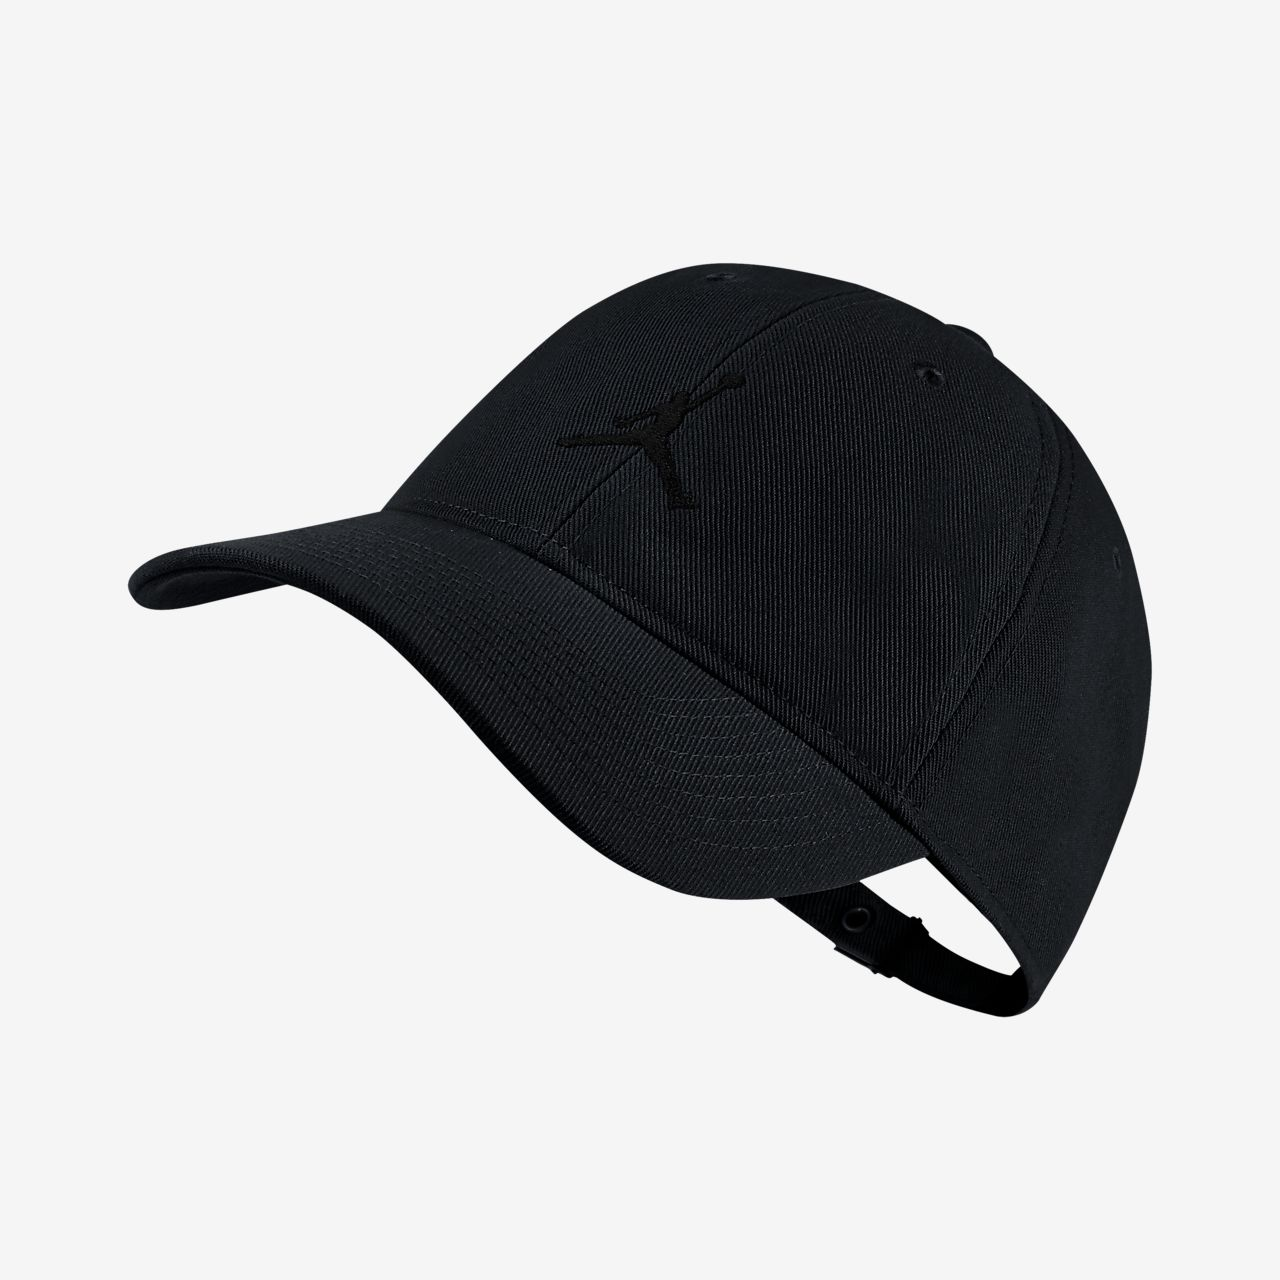 8702f693b03 Jordan Jumpman H86 Adjustable Hat. Nike.com GB